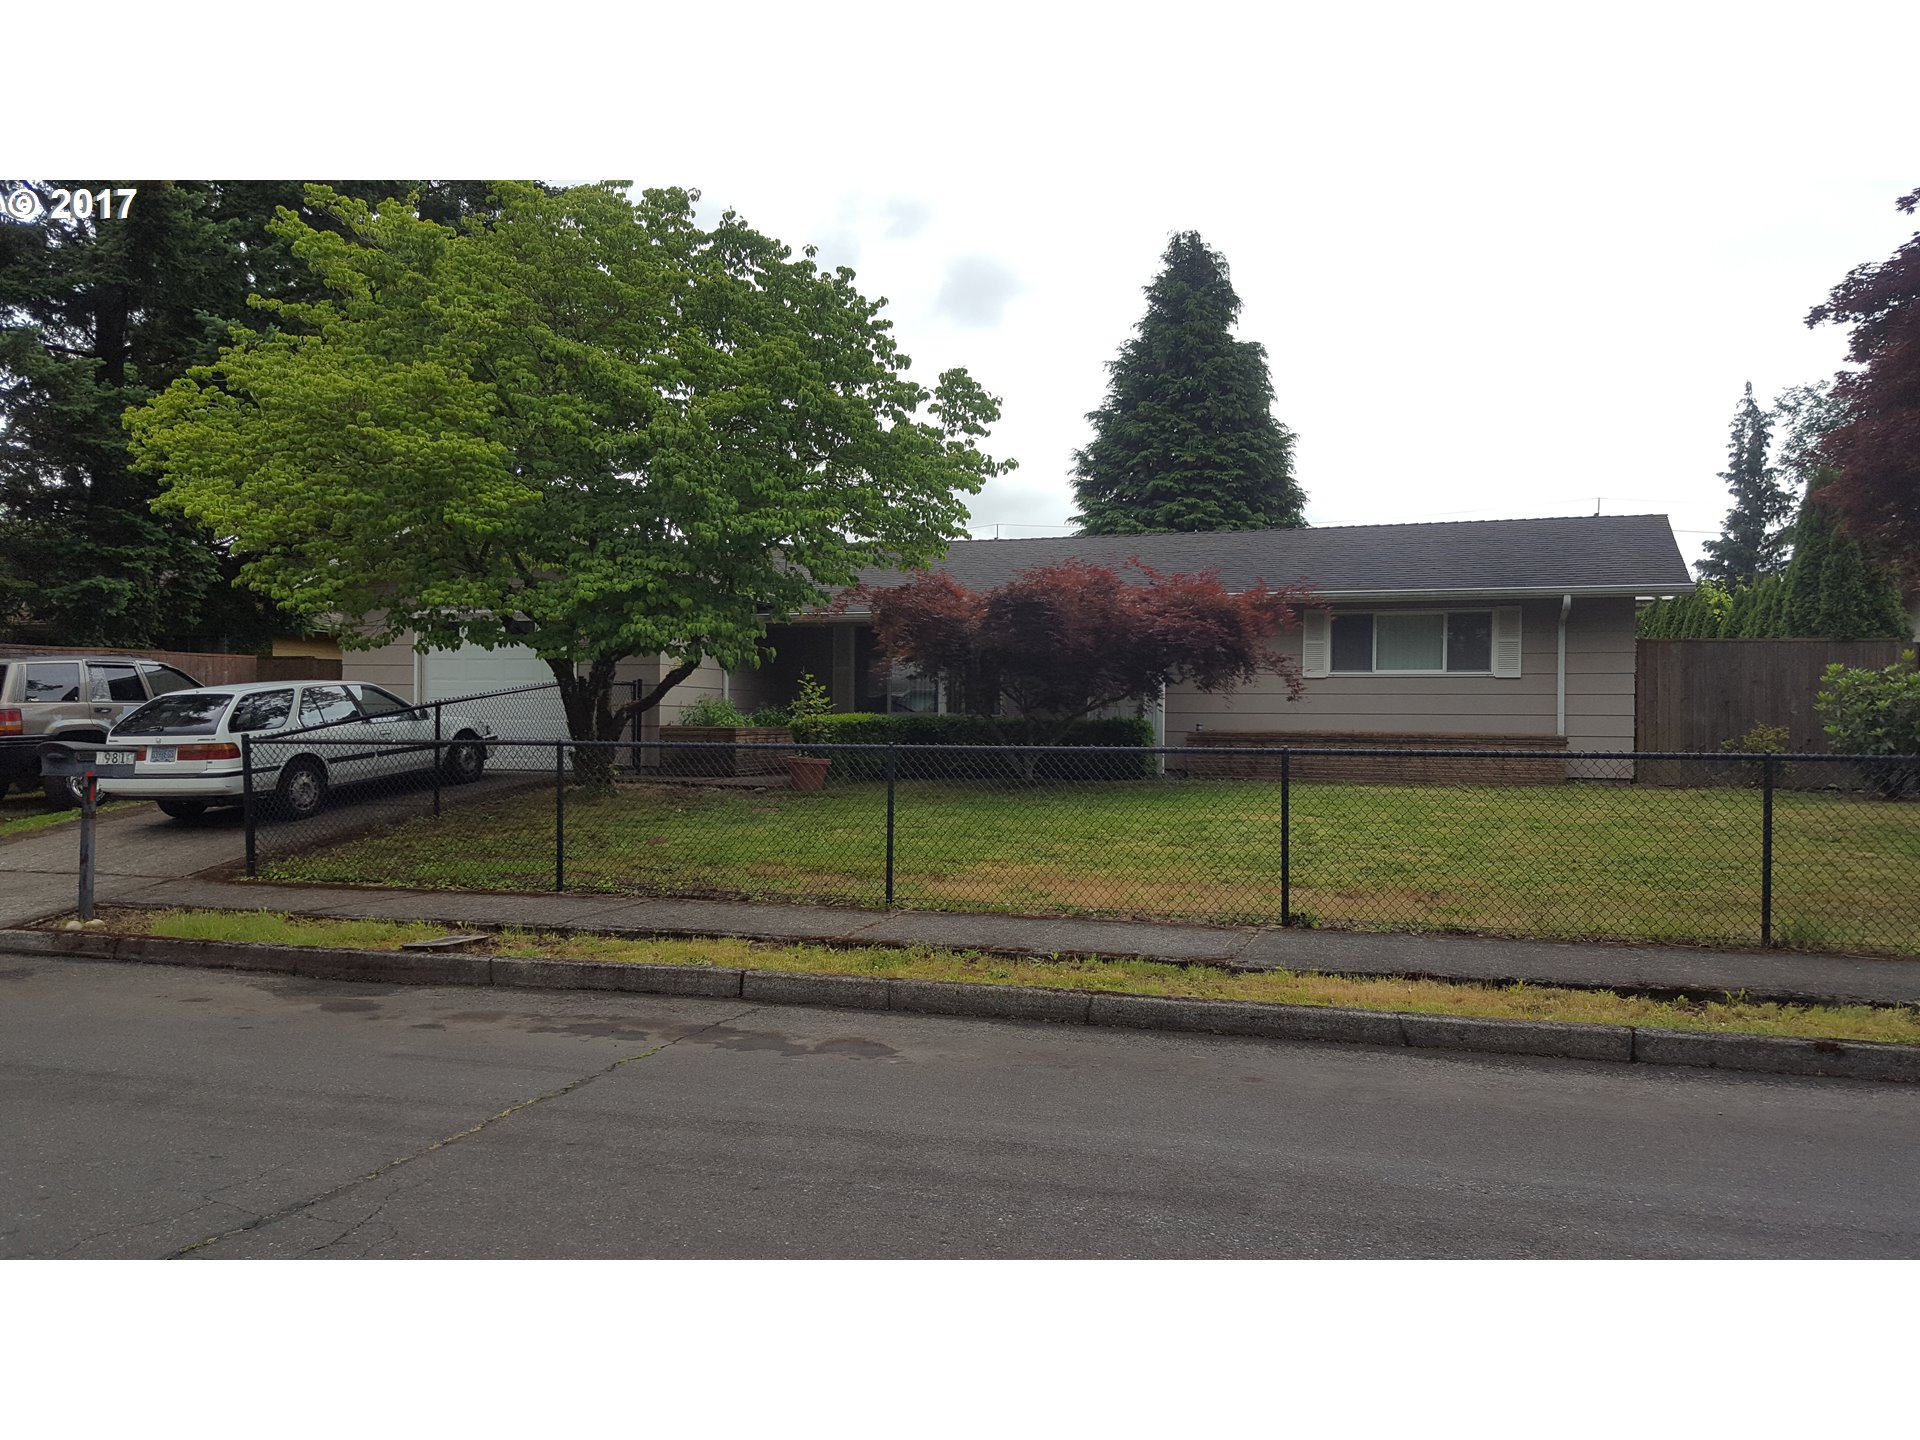 1200 sq. ft 3 bedrooms 1 bathrooms  House ,Portland, OR